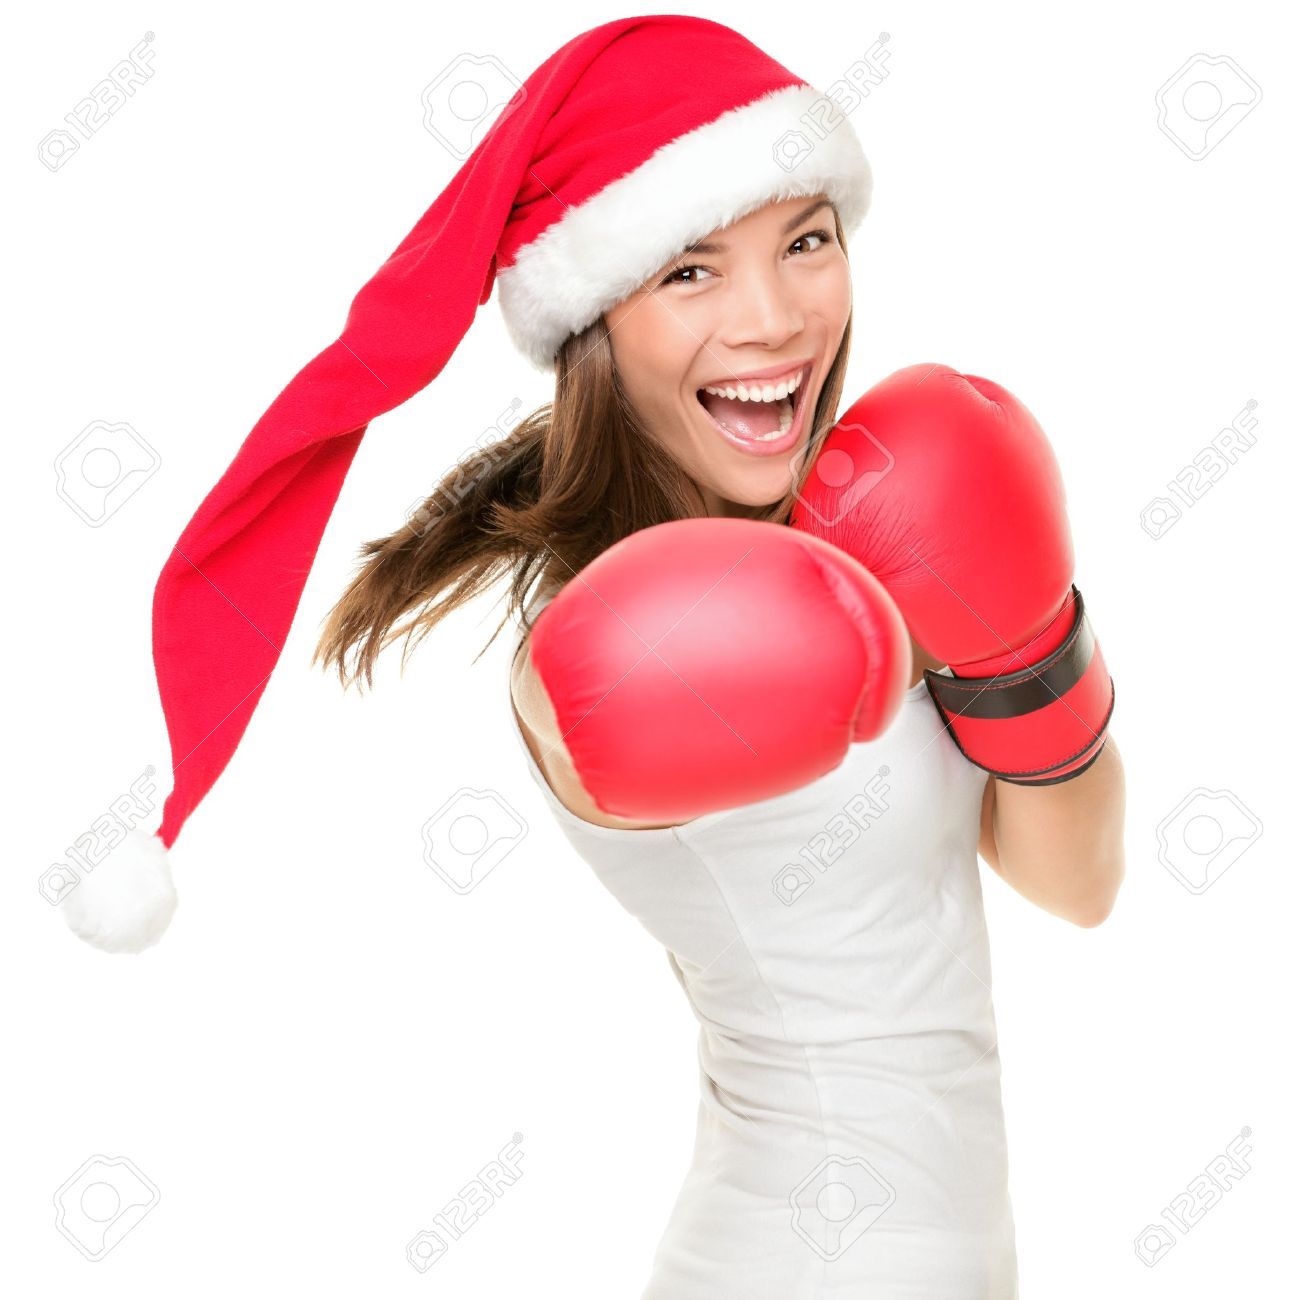 Christmas woman hitting wearing boxing gloves and red santa hat. Shopping boxing day or fitness concept. Beautiful fresh energy from asian caucasian female model isolated on white background. Stock Photo - 10914919